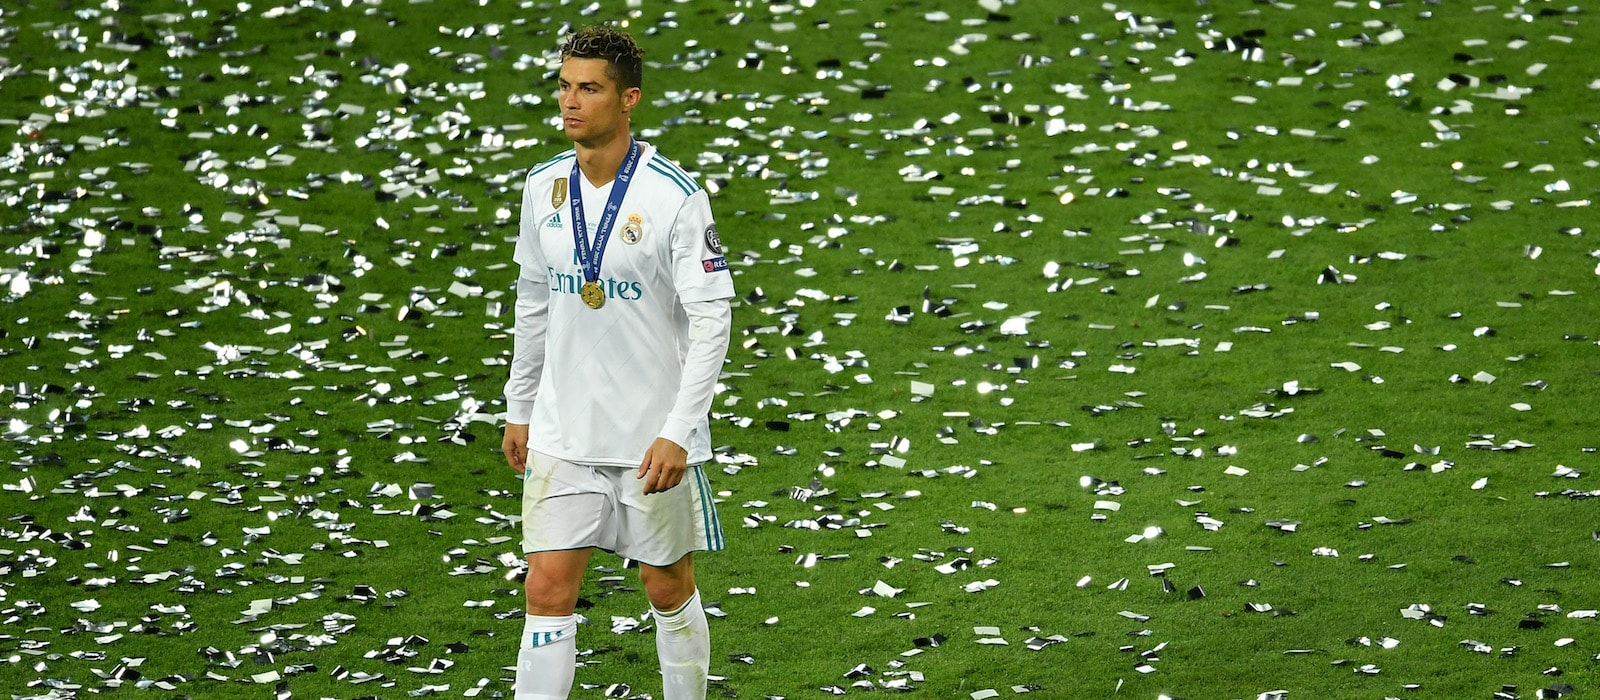 Luka Modric: I don't think Cristiano Ronaldo will leave Real Madrid